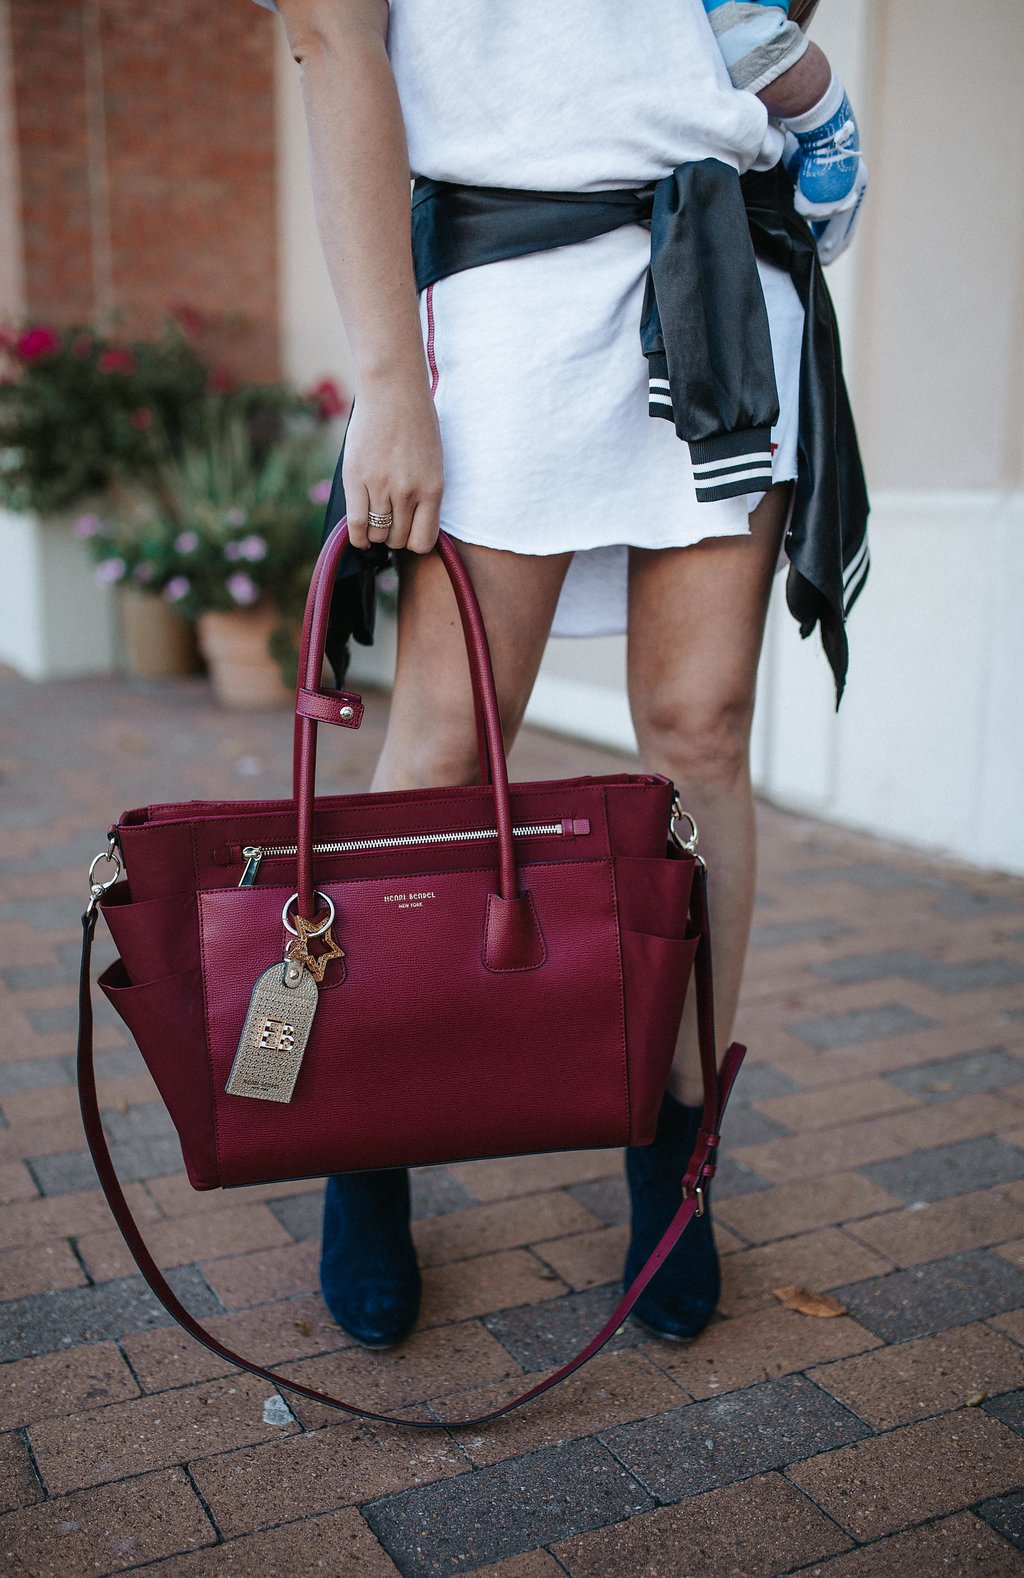 T-shirt dress outfit | Ankle booties | Bomber Jacket | Casual mom style | Henri Bendel Diaper Bag | Uptown with Elly Brown